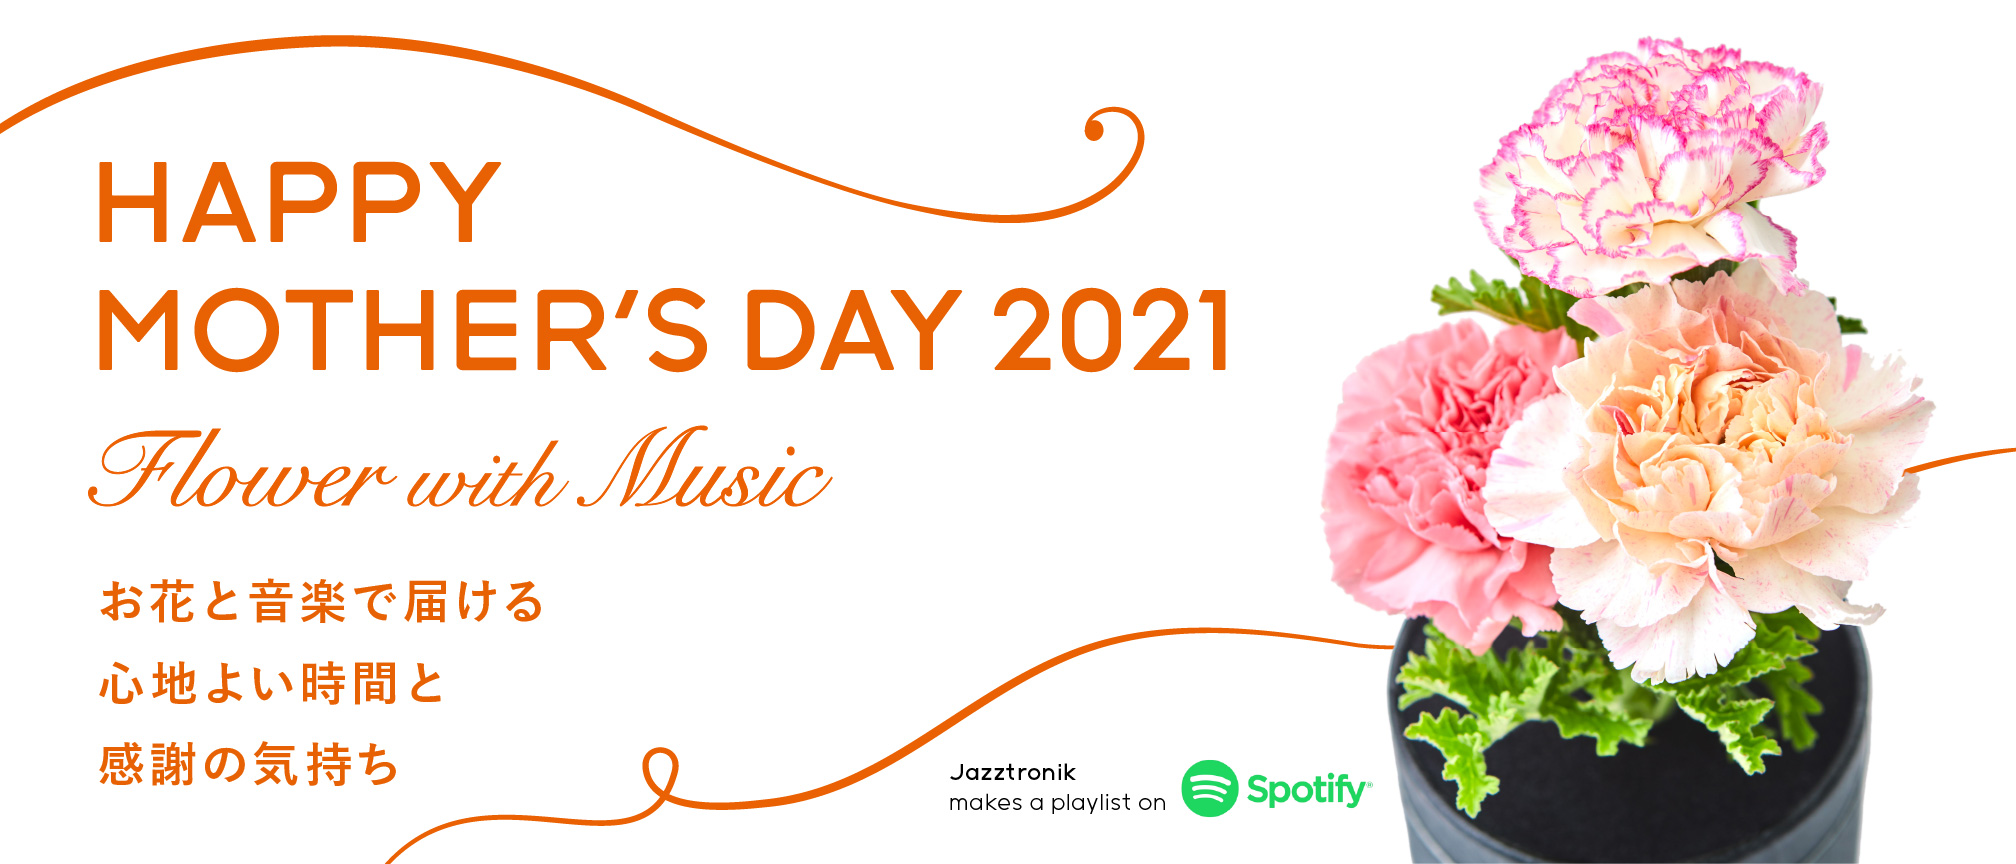 LIFULL FLOWER HAPPY MOTHER'S DAY Flower with Music